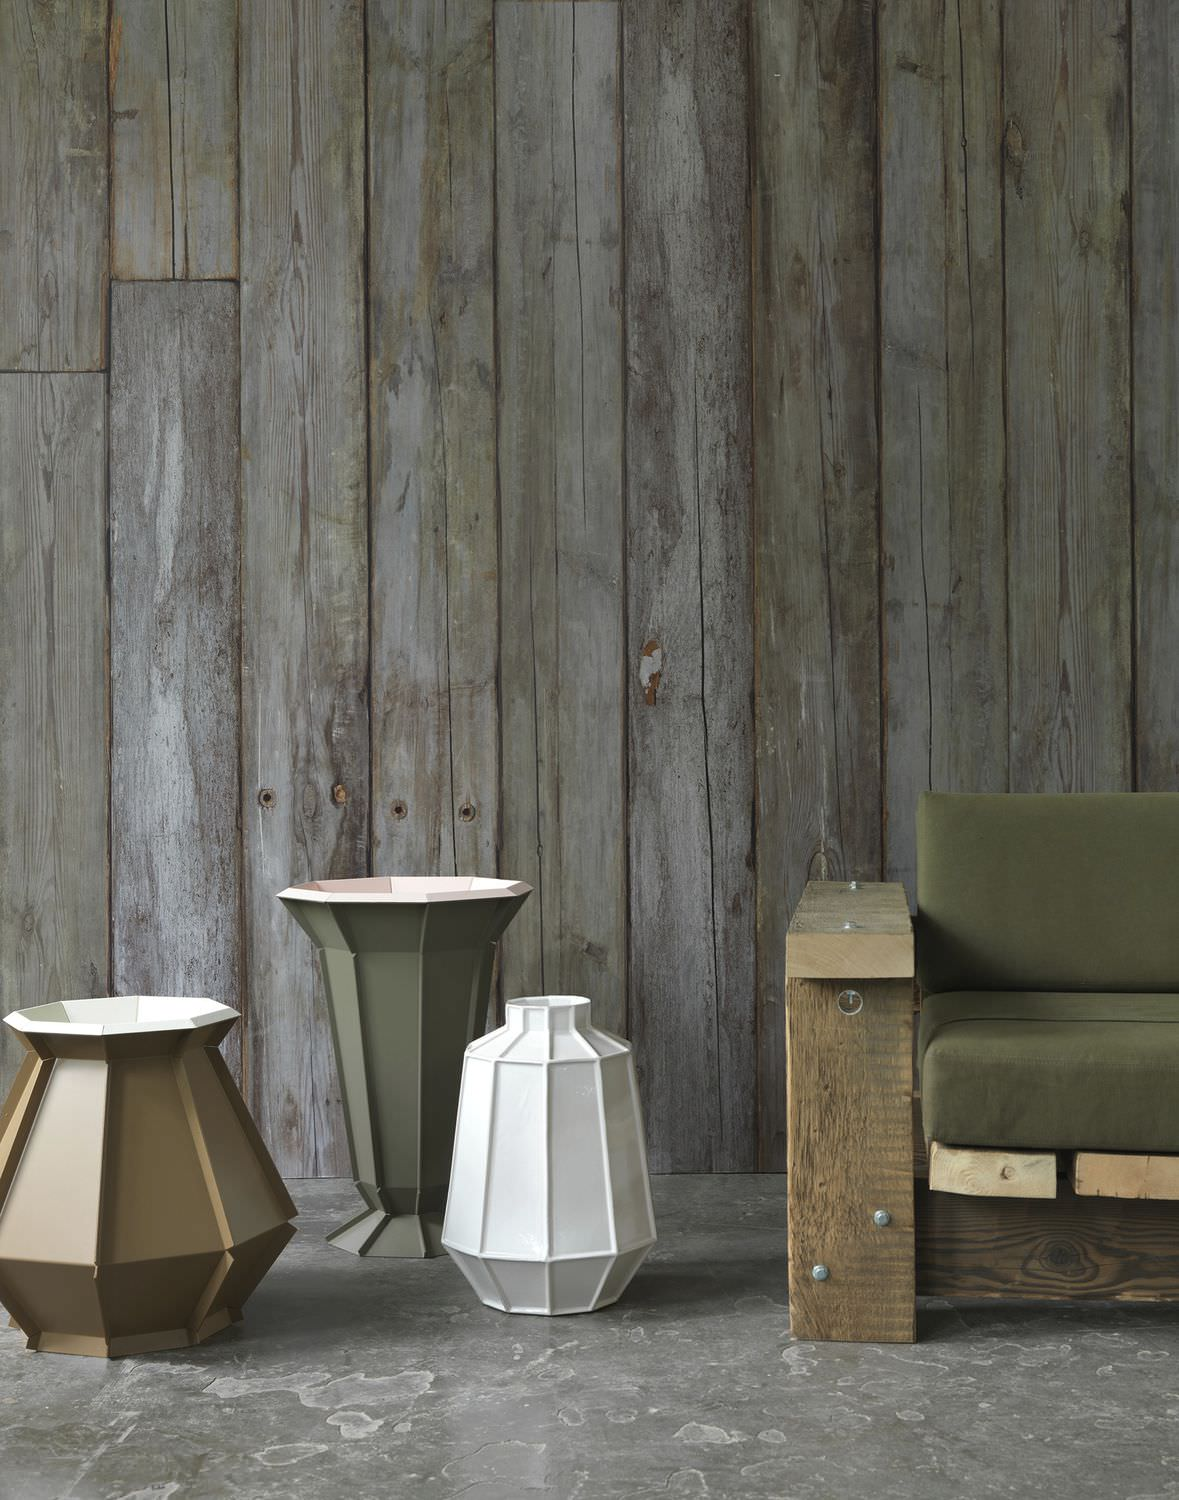 Traditional Wallpaper Rustic Patterned Wood Look